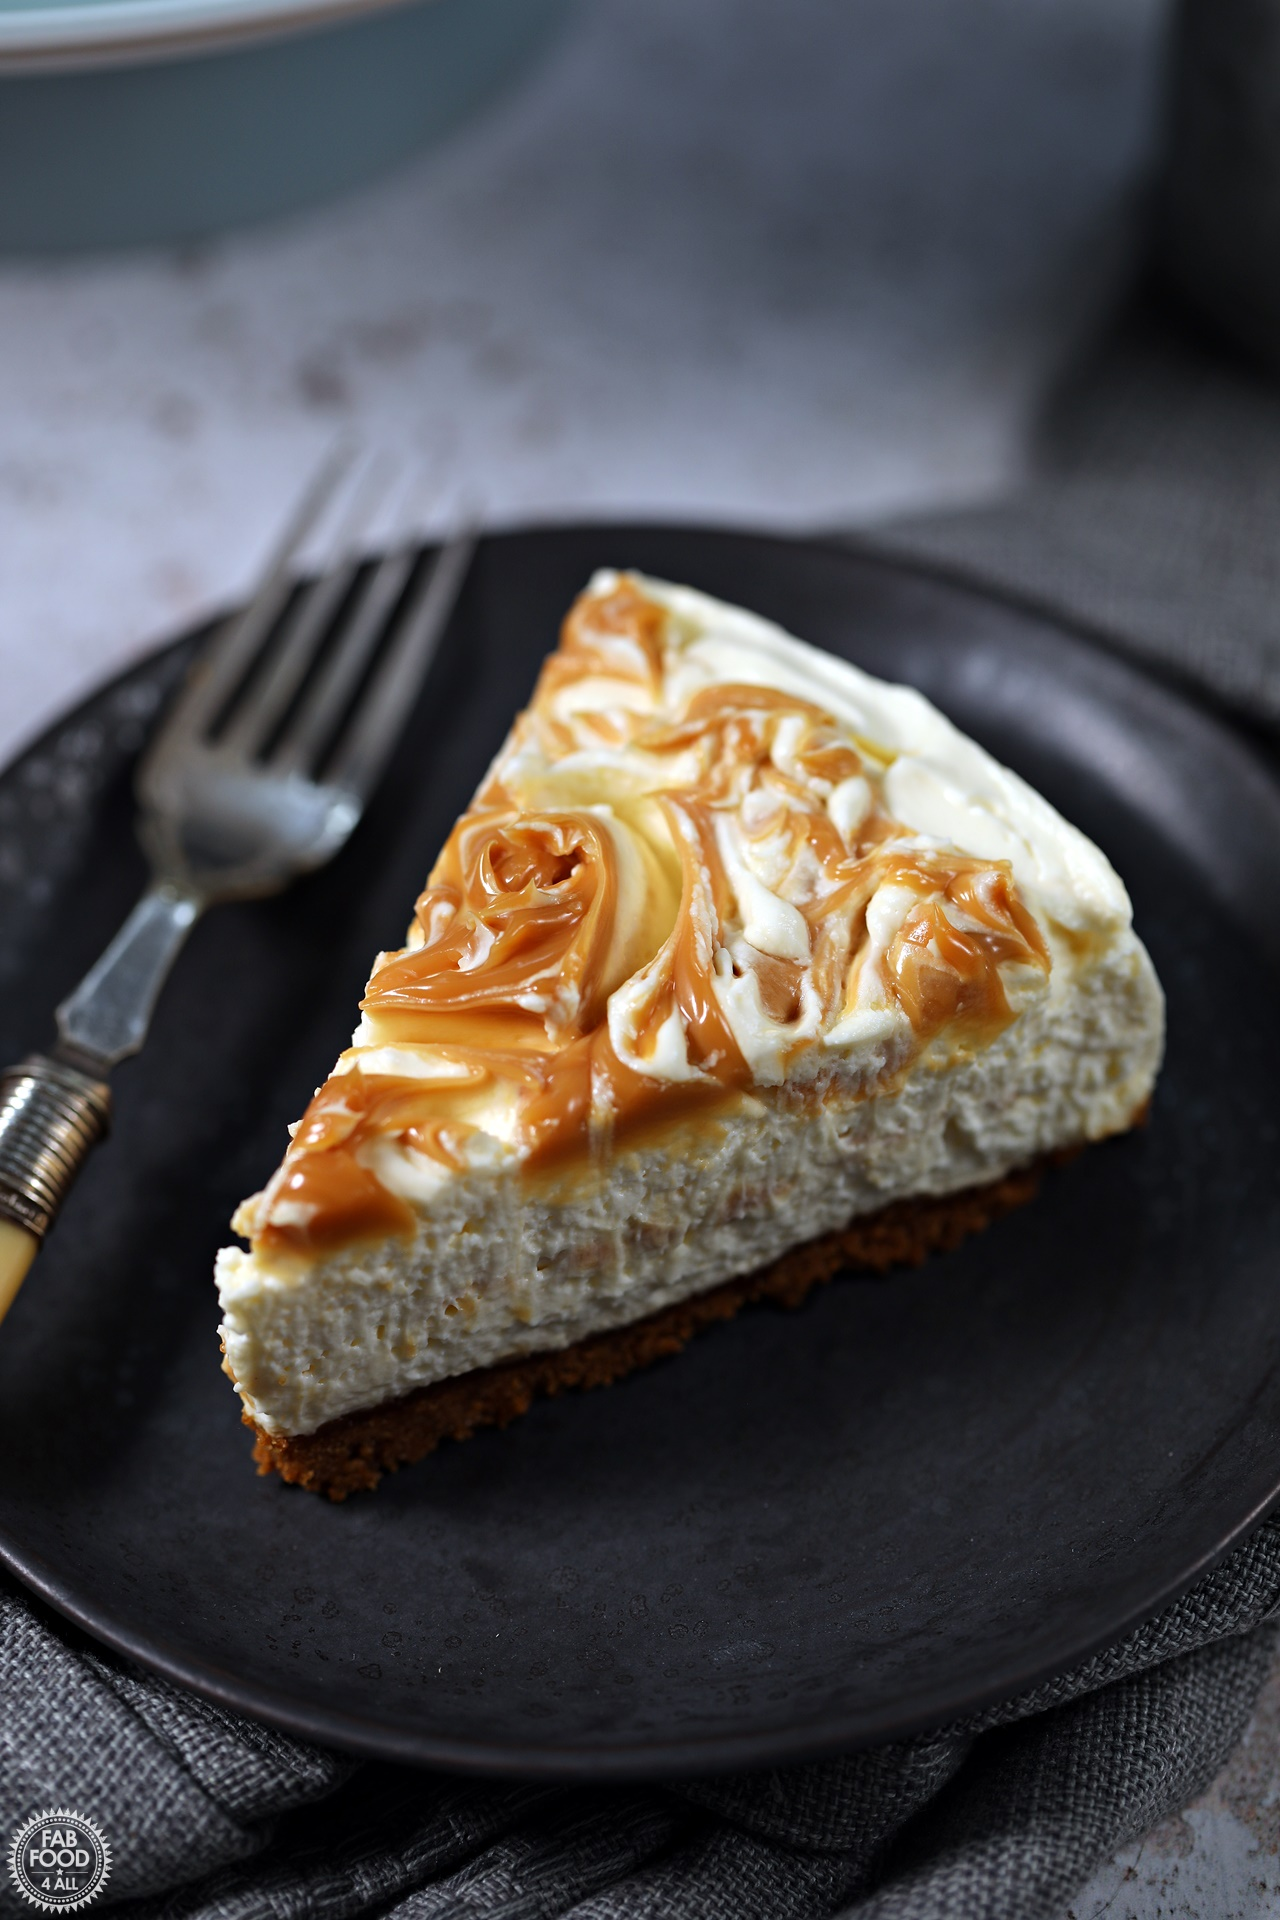 Slice of Easy Salted Caramel Cheesecake on a plate with fork.